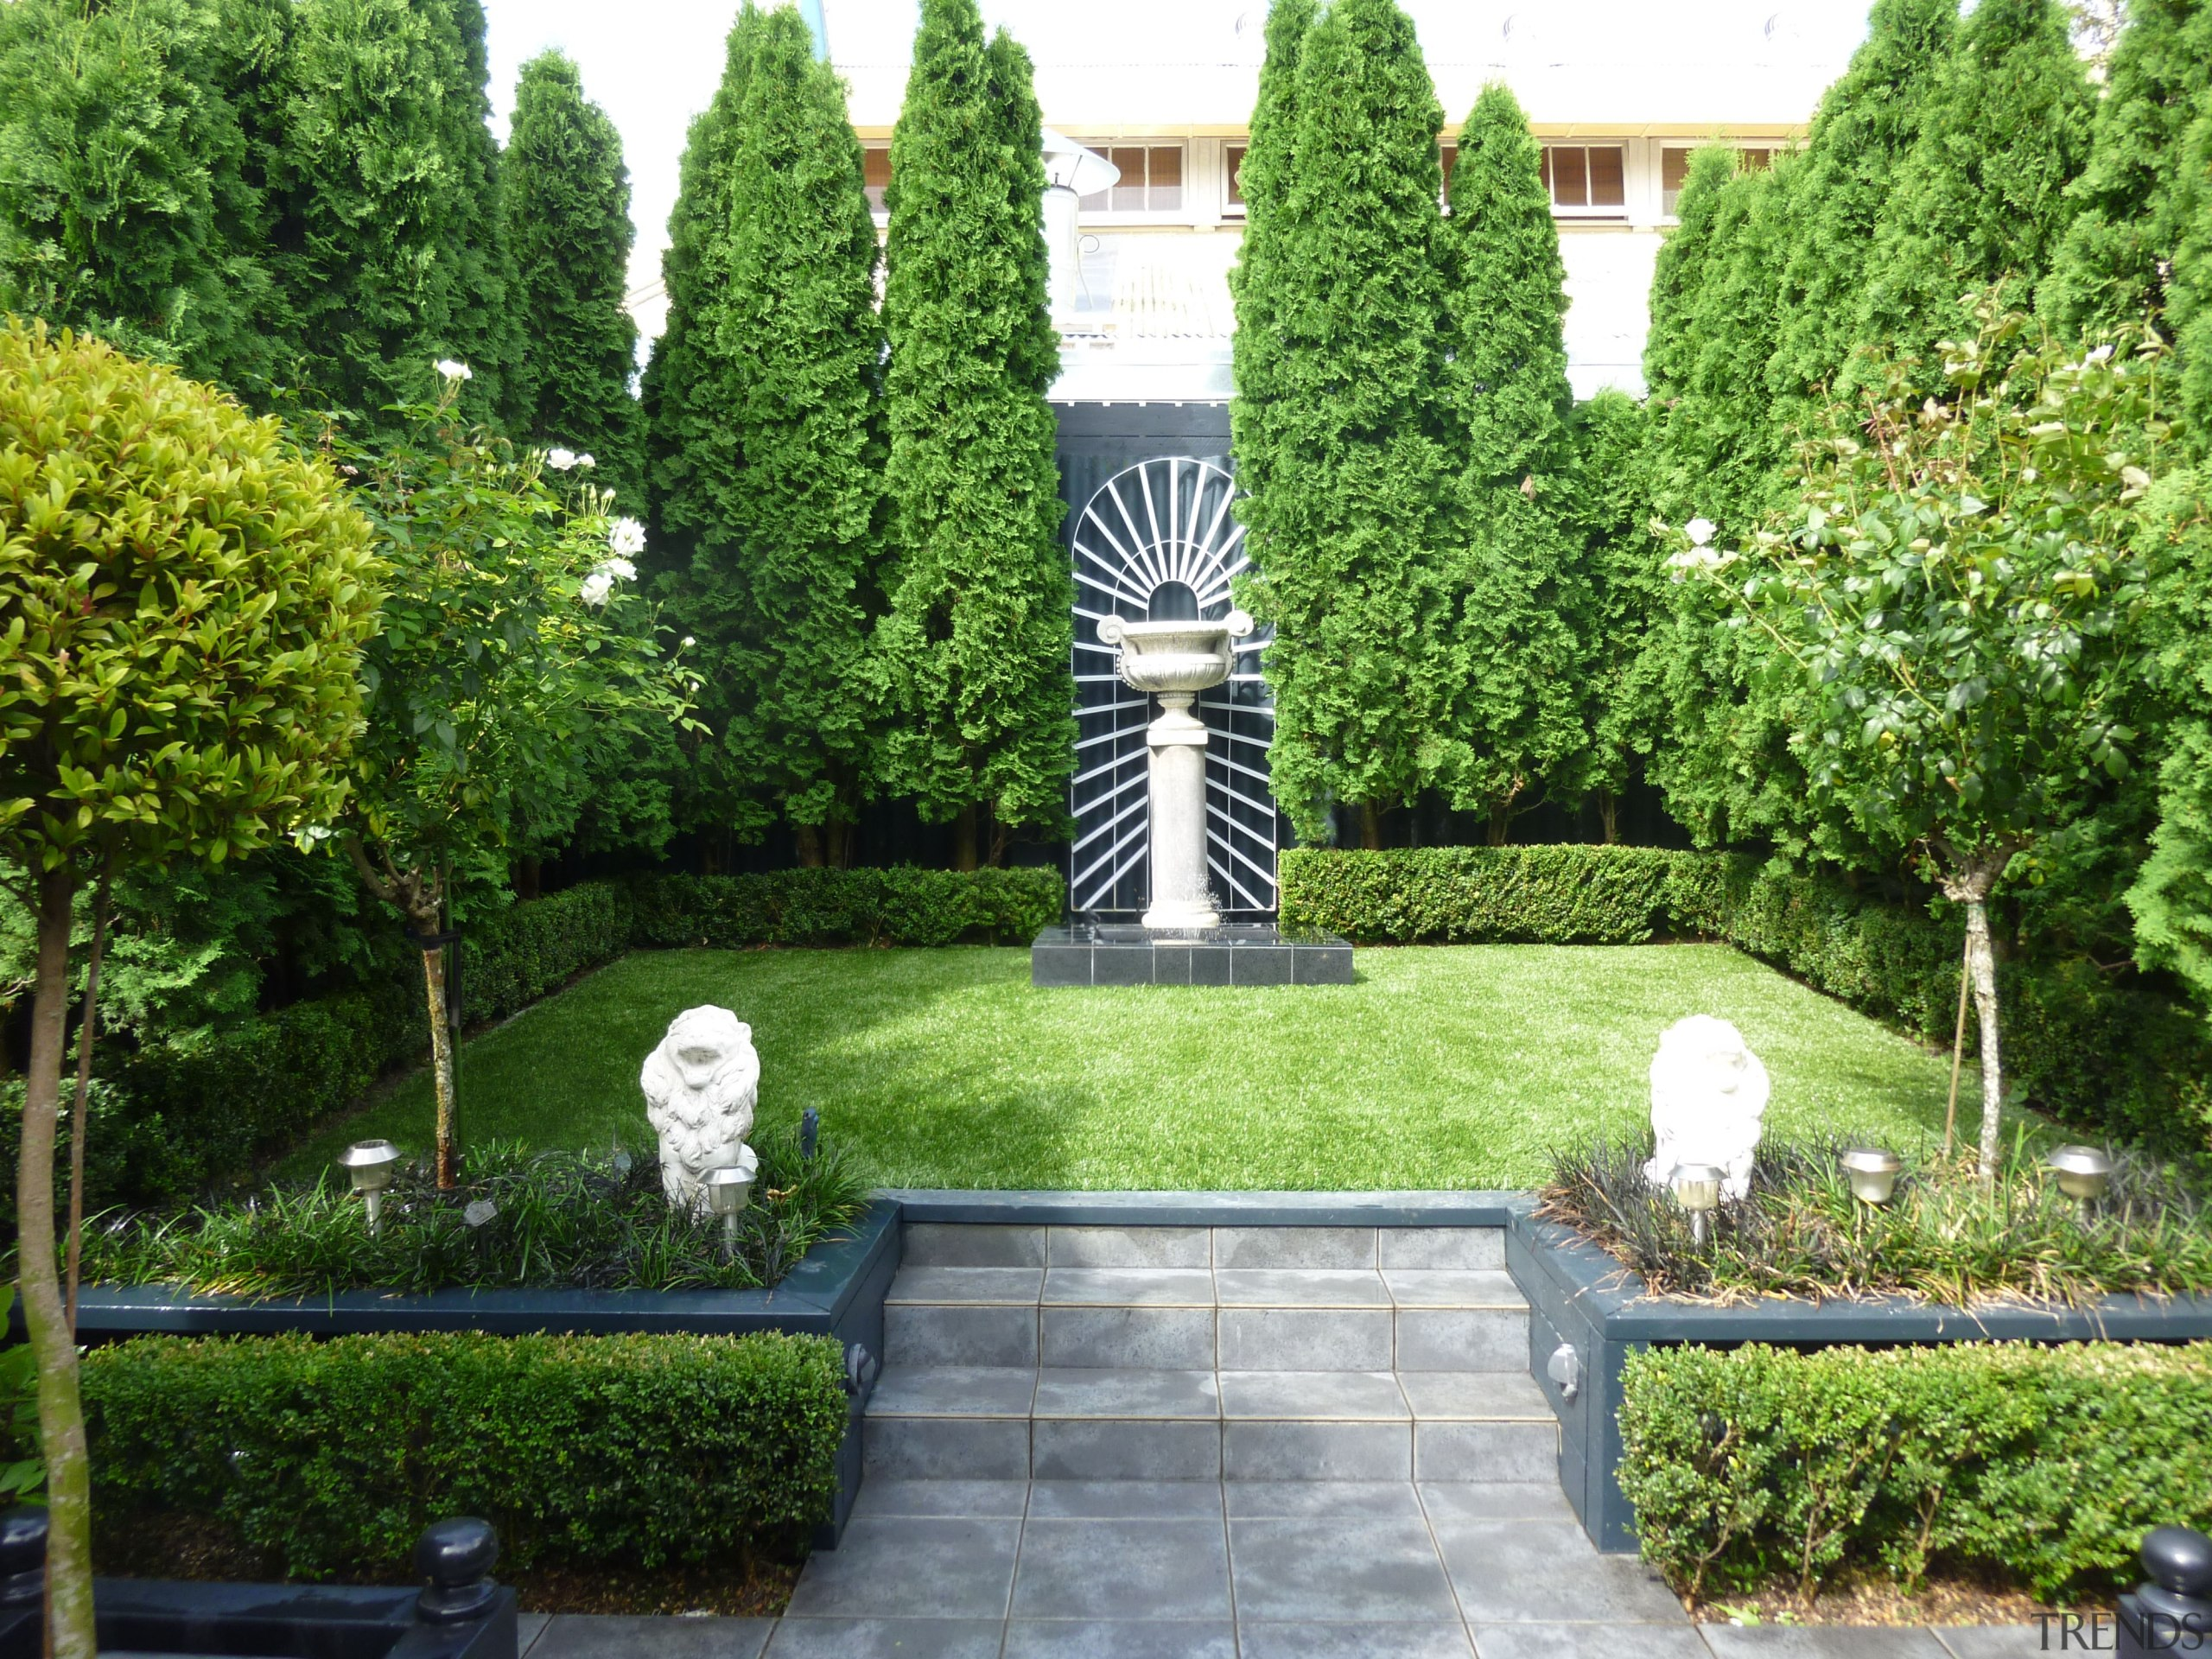 By creating two separate zones, this garden feels botanical garden, courtyard, estate, evergreen, garden, grass, hedge, landscape, landscaping, lawn, plant, shrub, tree, walkway, yard, green